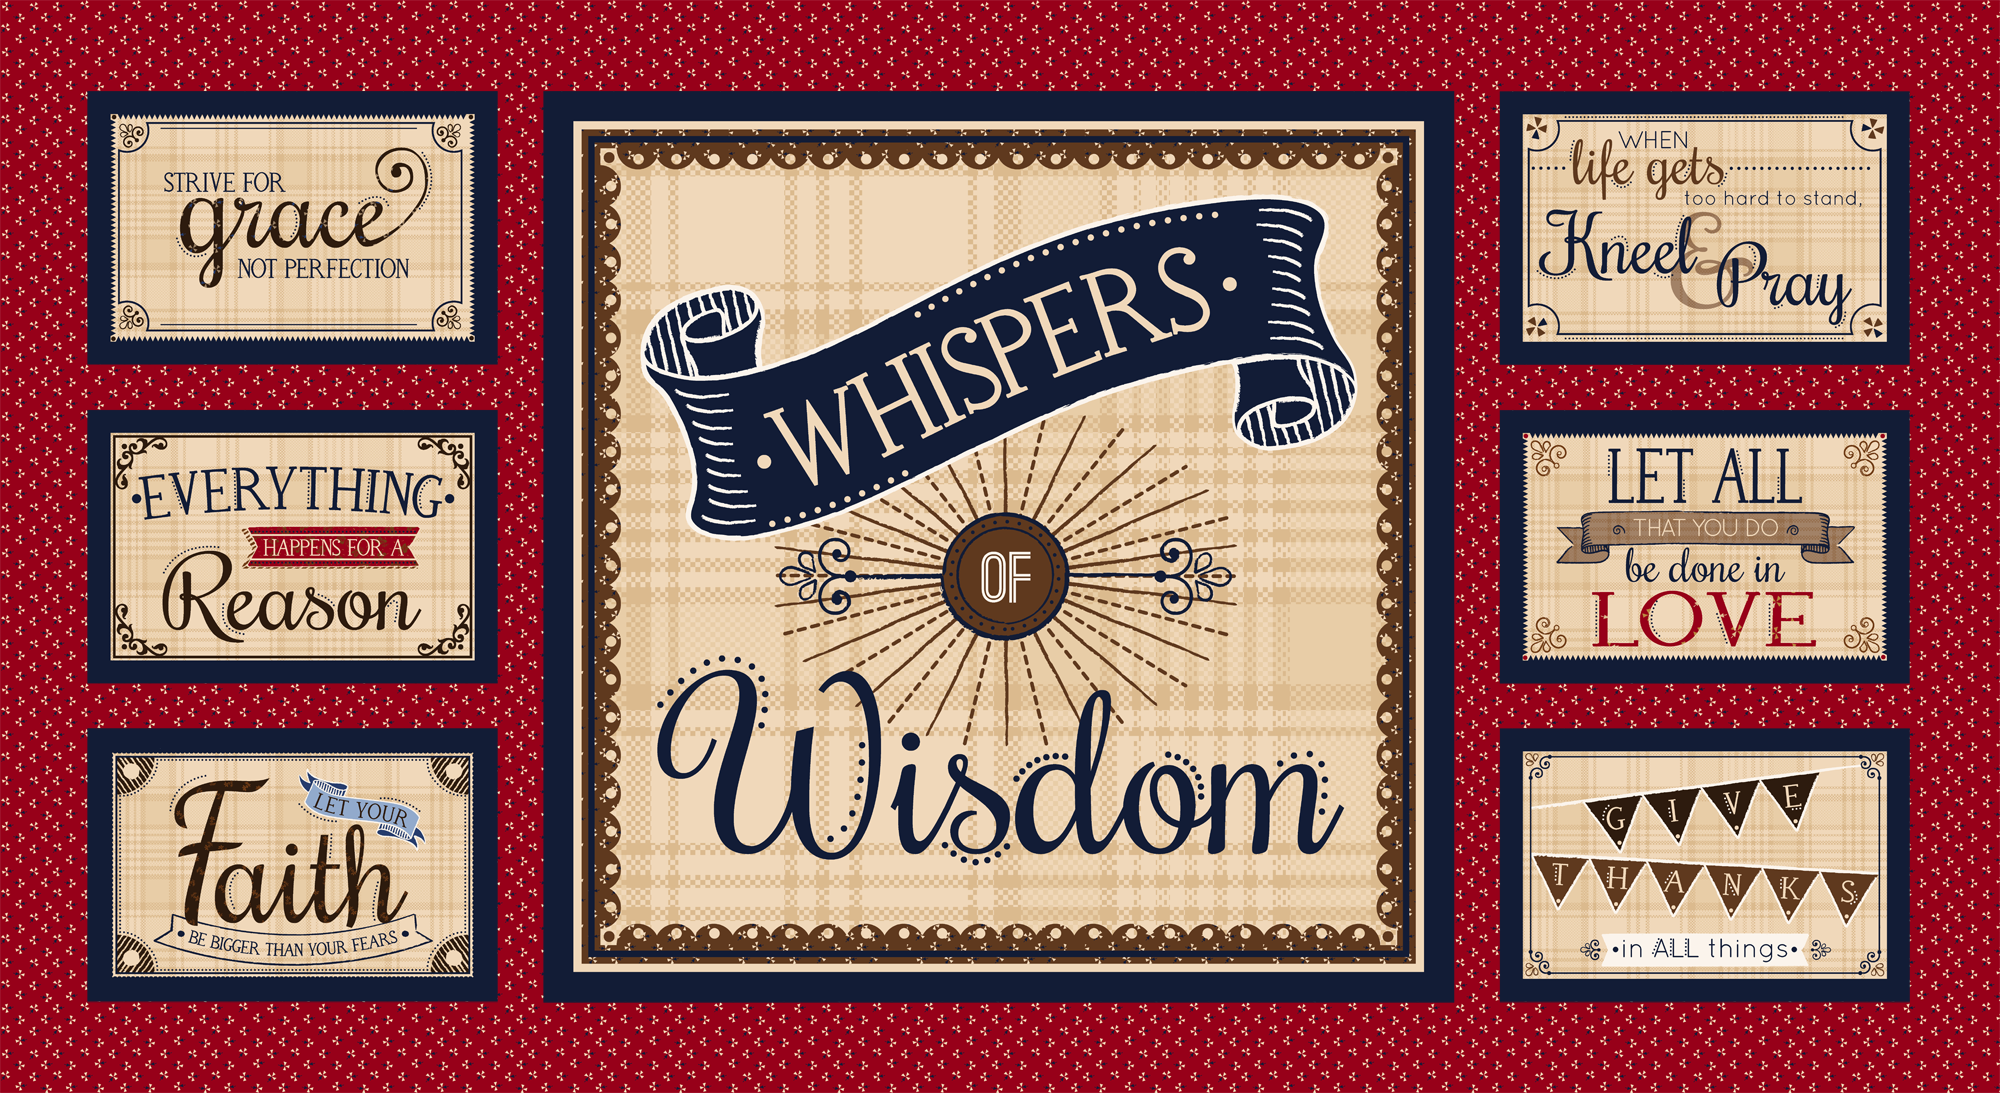 Whispers of Wisdom - 8337P-88